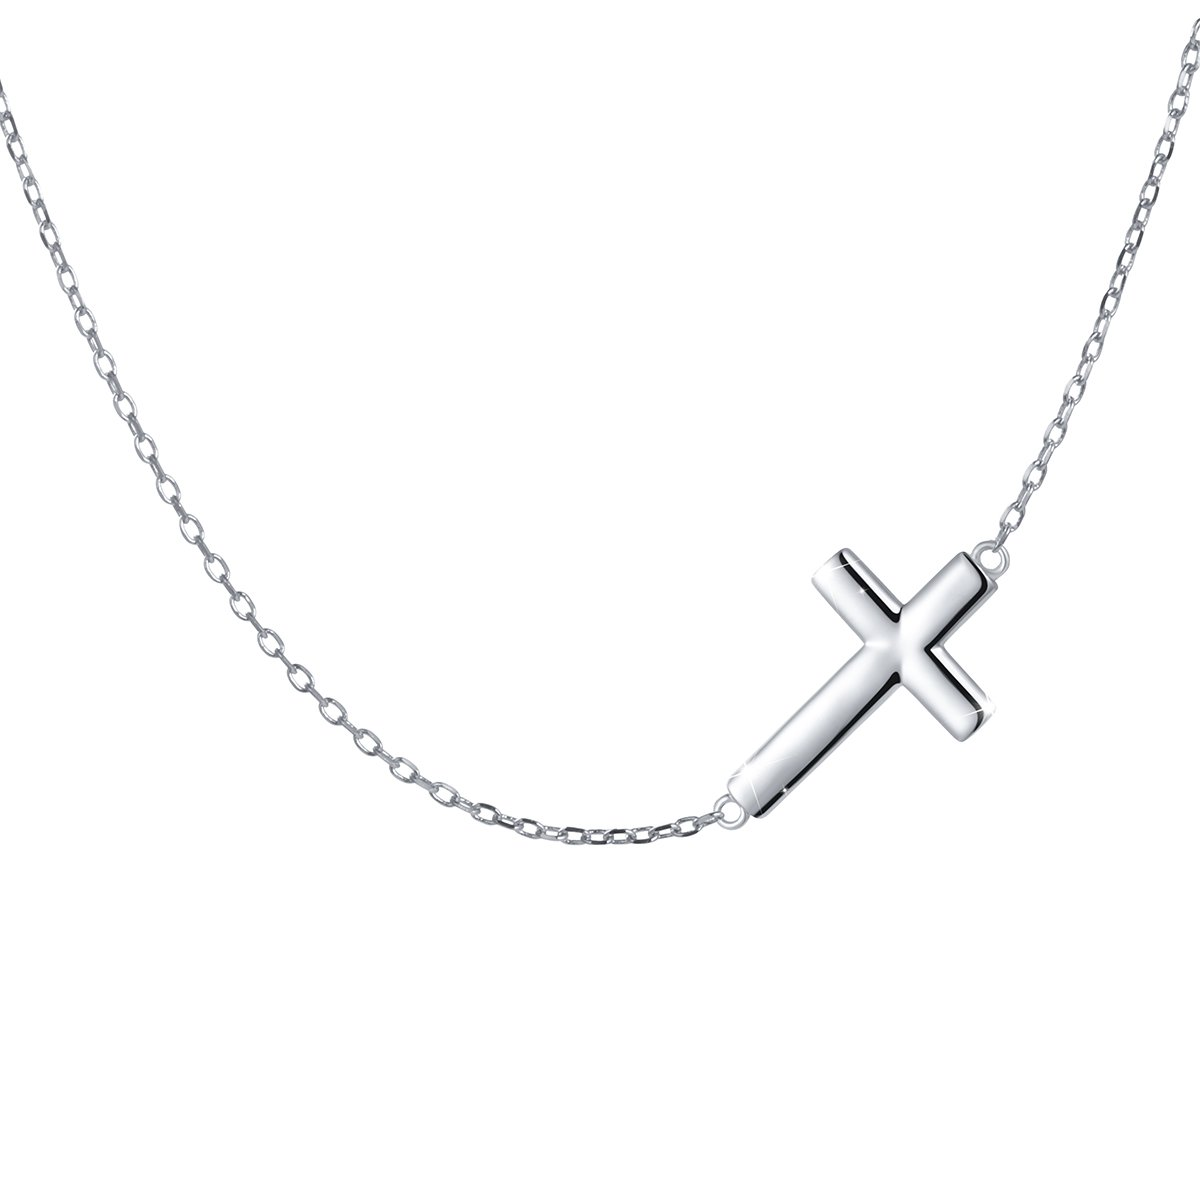 S925 Sterling Silver Jewelry Sideways Cross Choker Necklace 16+2